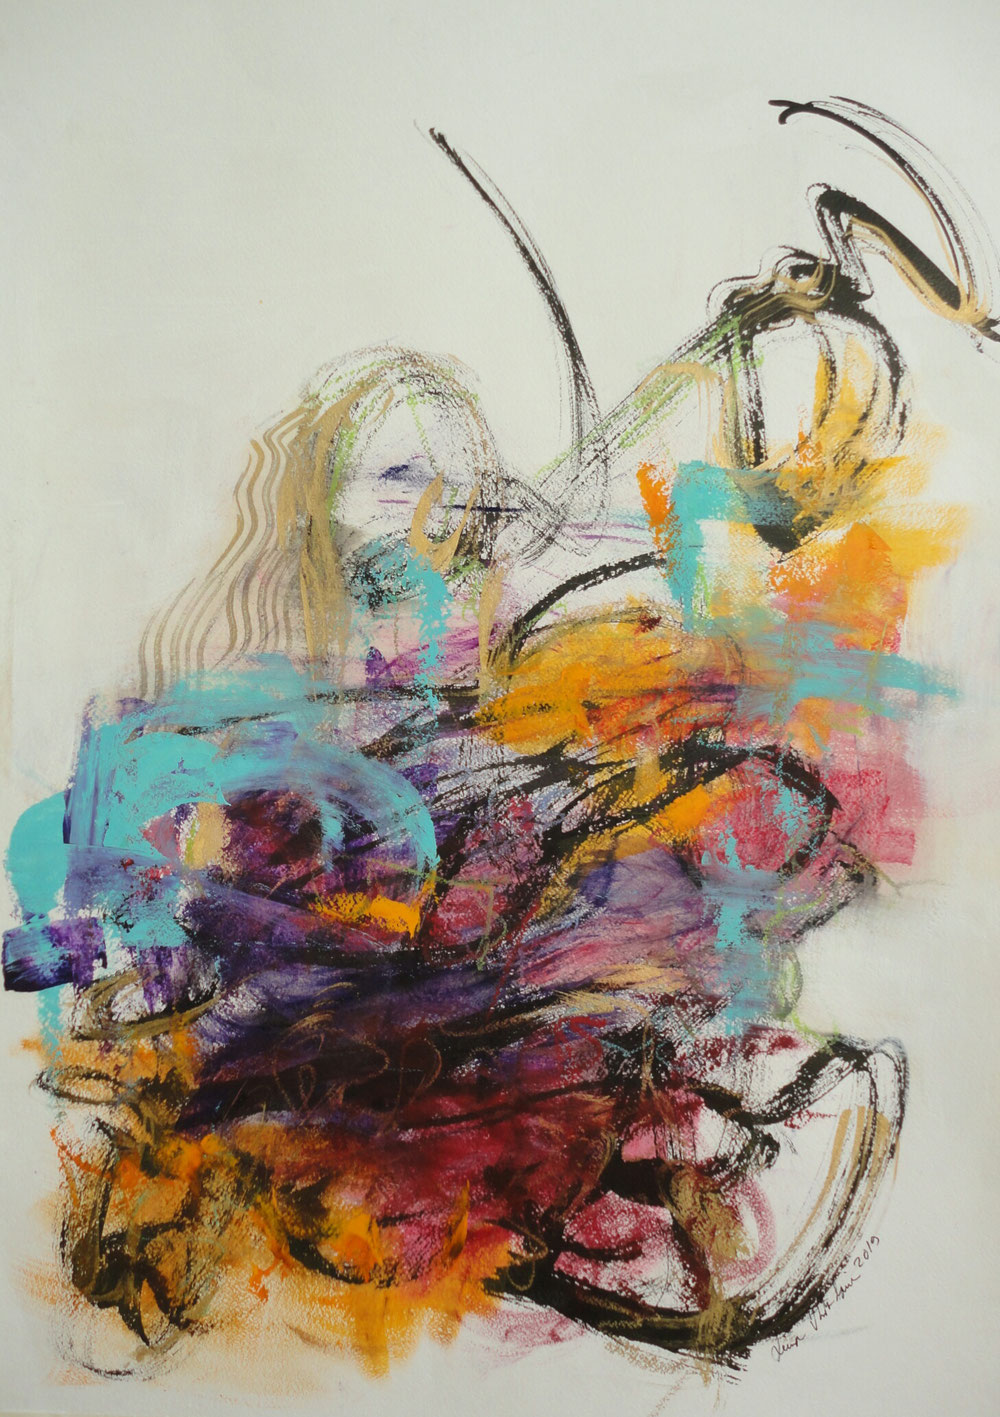 My way, 86 x 61, mixed media on paper/ available in www.taidelainaamo.fi